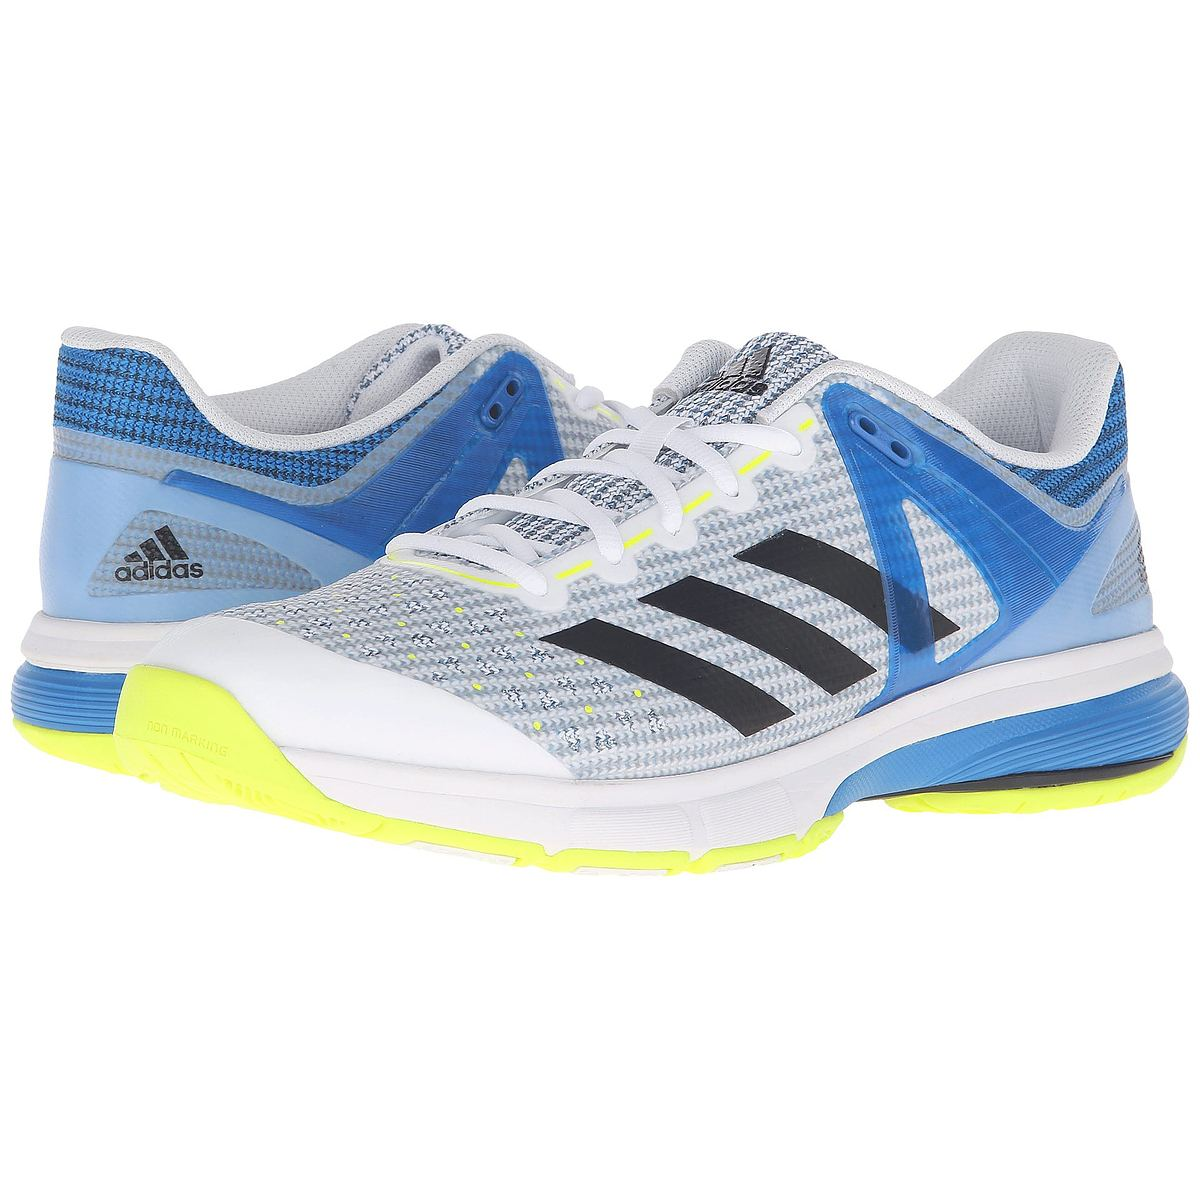 Adidas Court Stabil 13 Court Shoes - Squash Source 0d0729f91e861